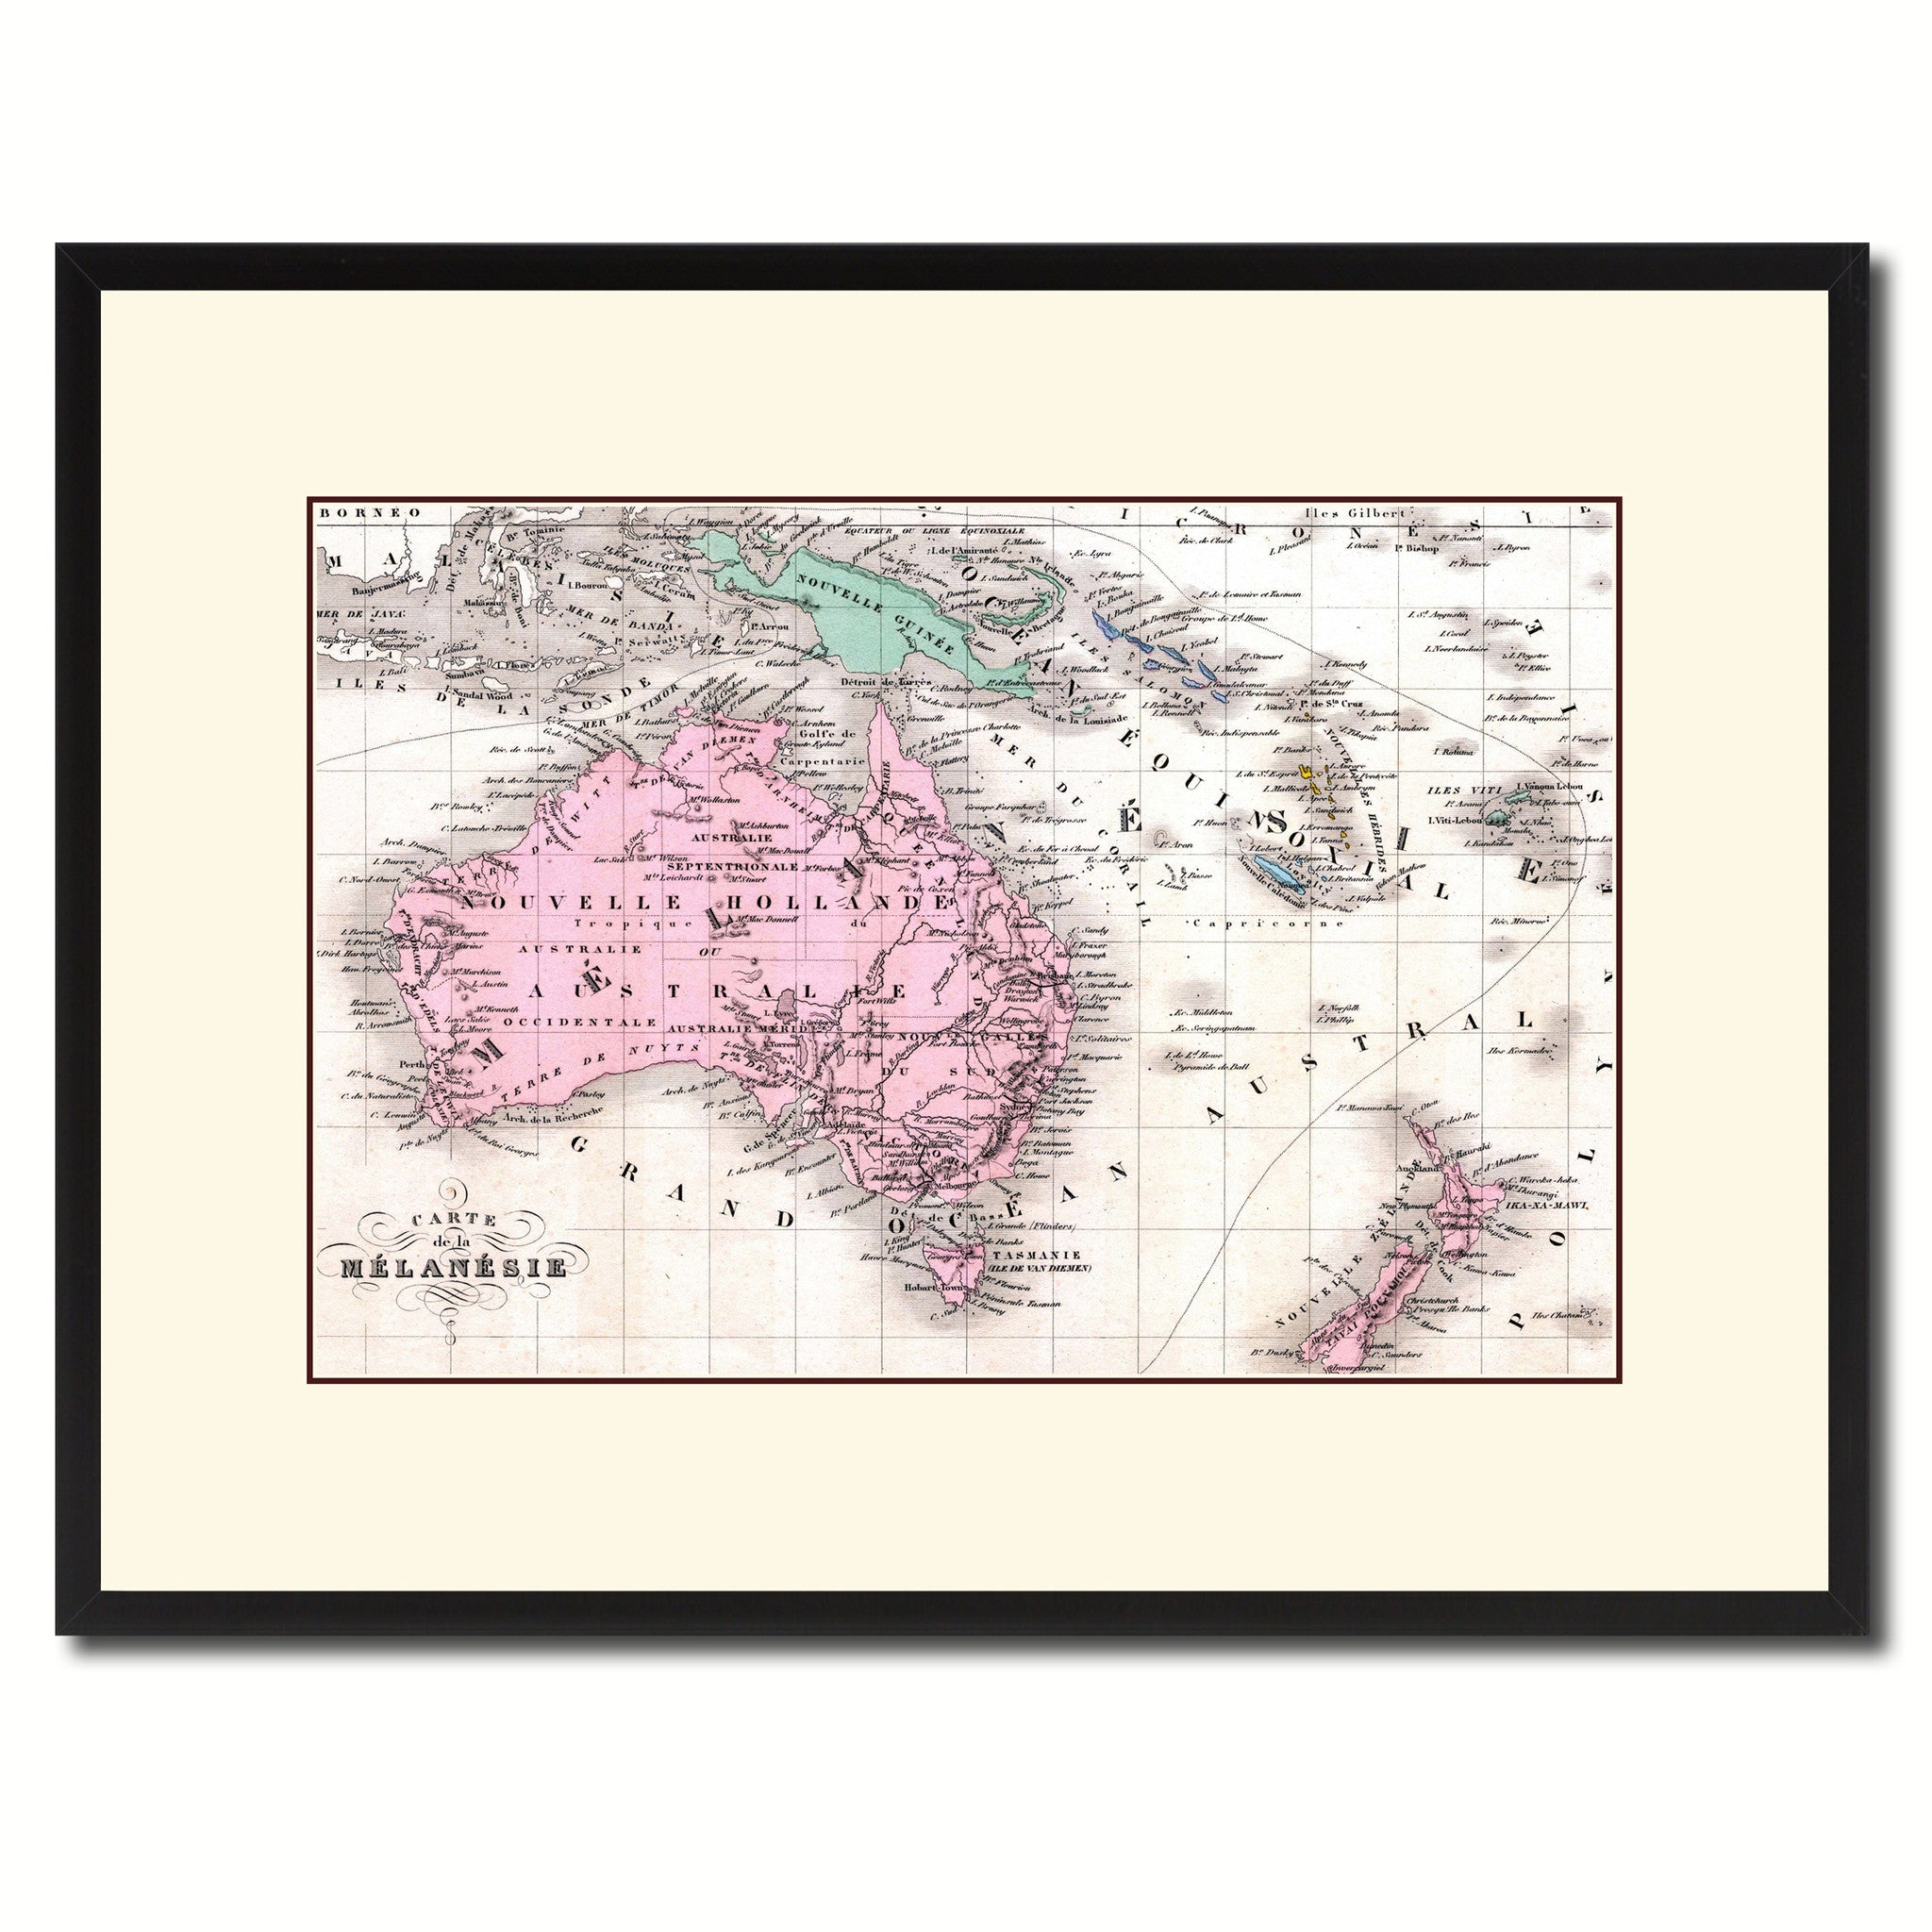 New Zealand Oceania Australia Vintage Antique Map Wall Art Home Decor Gift Ideas Ebay